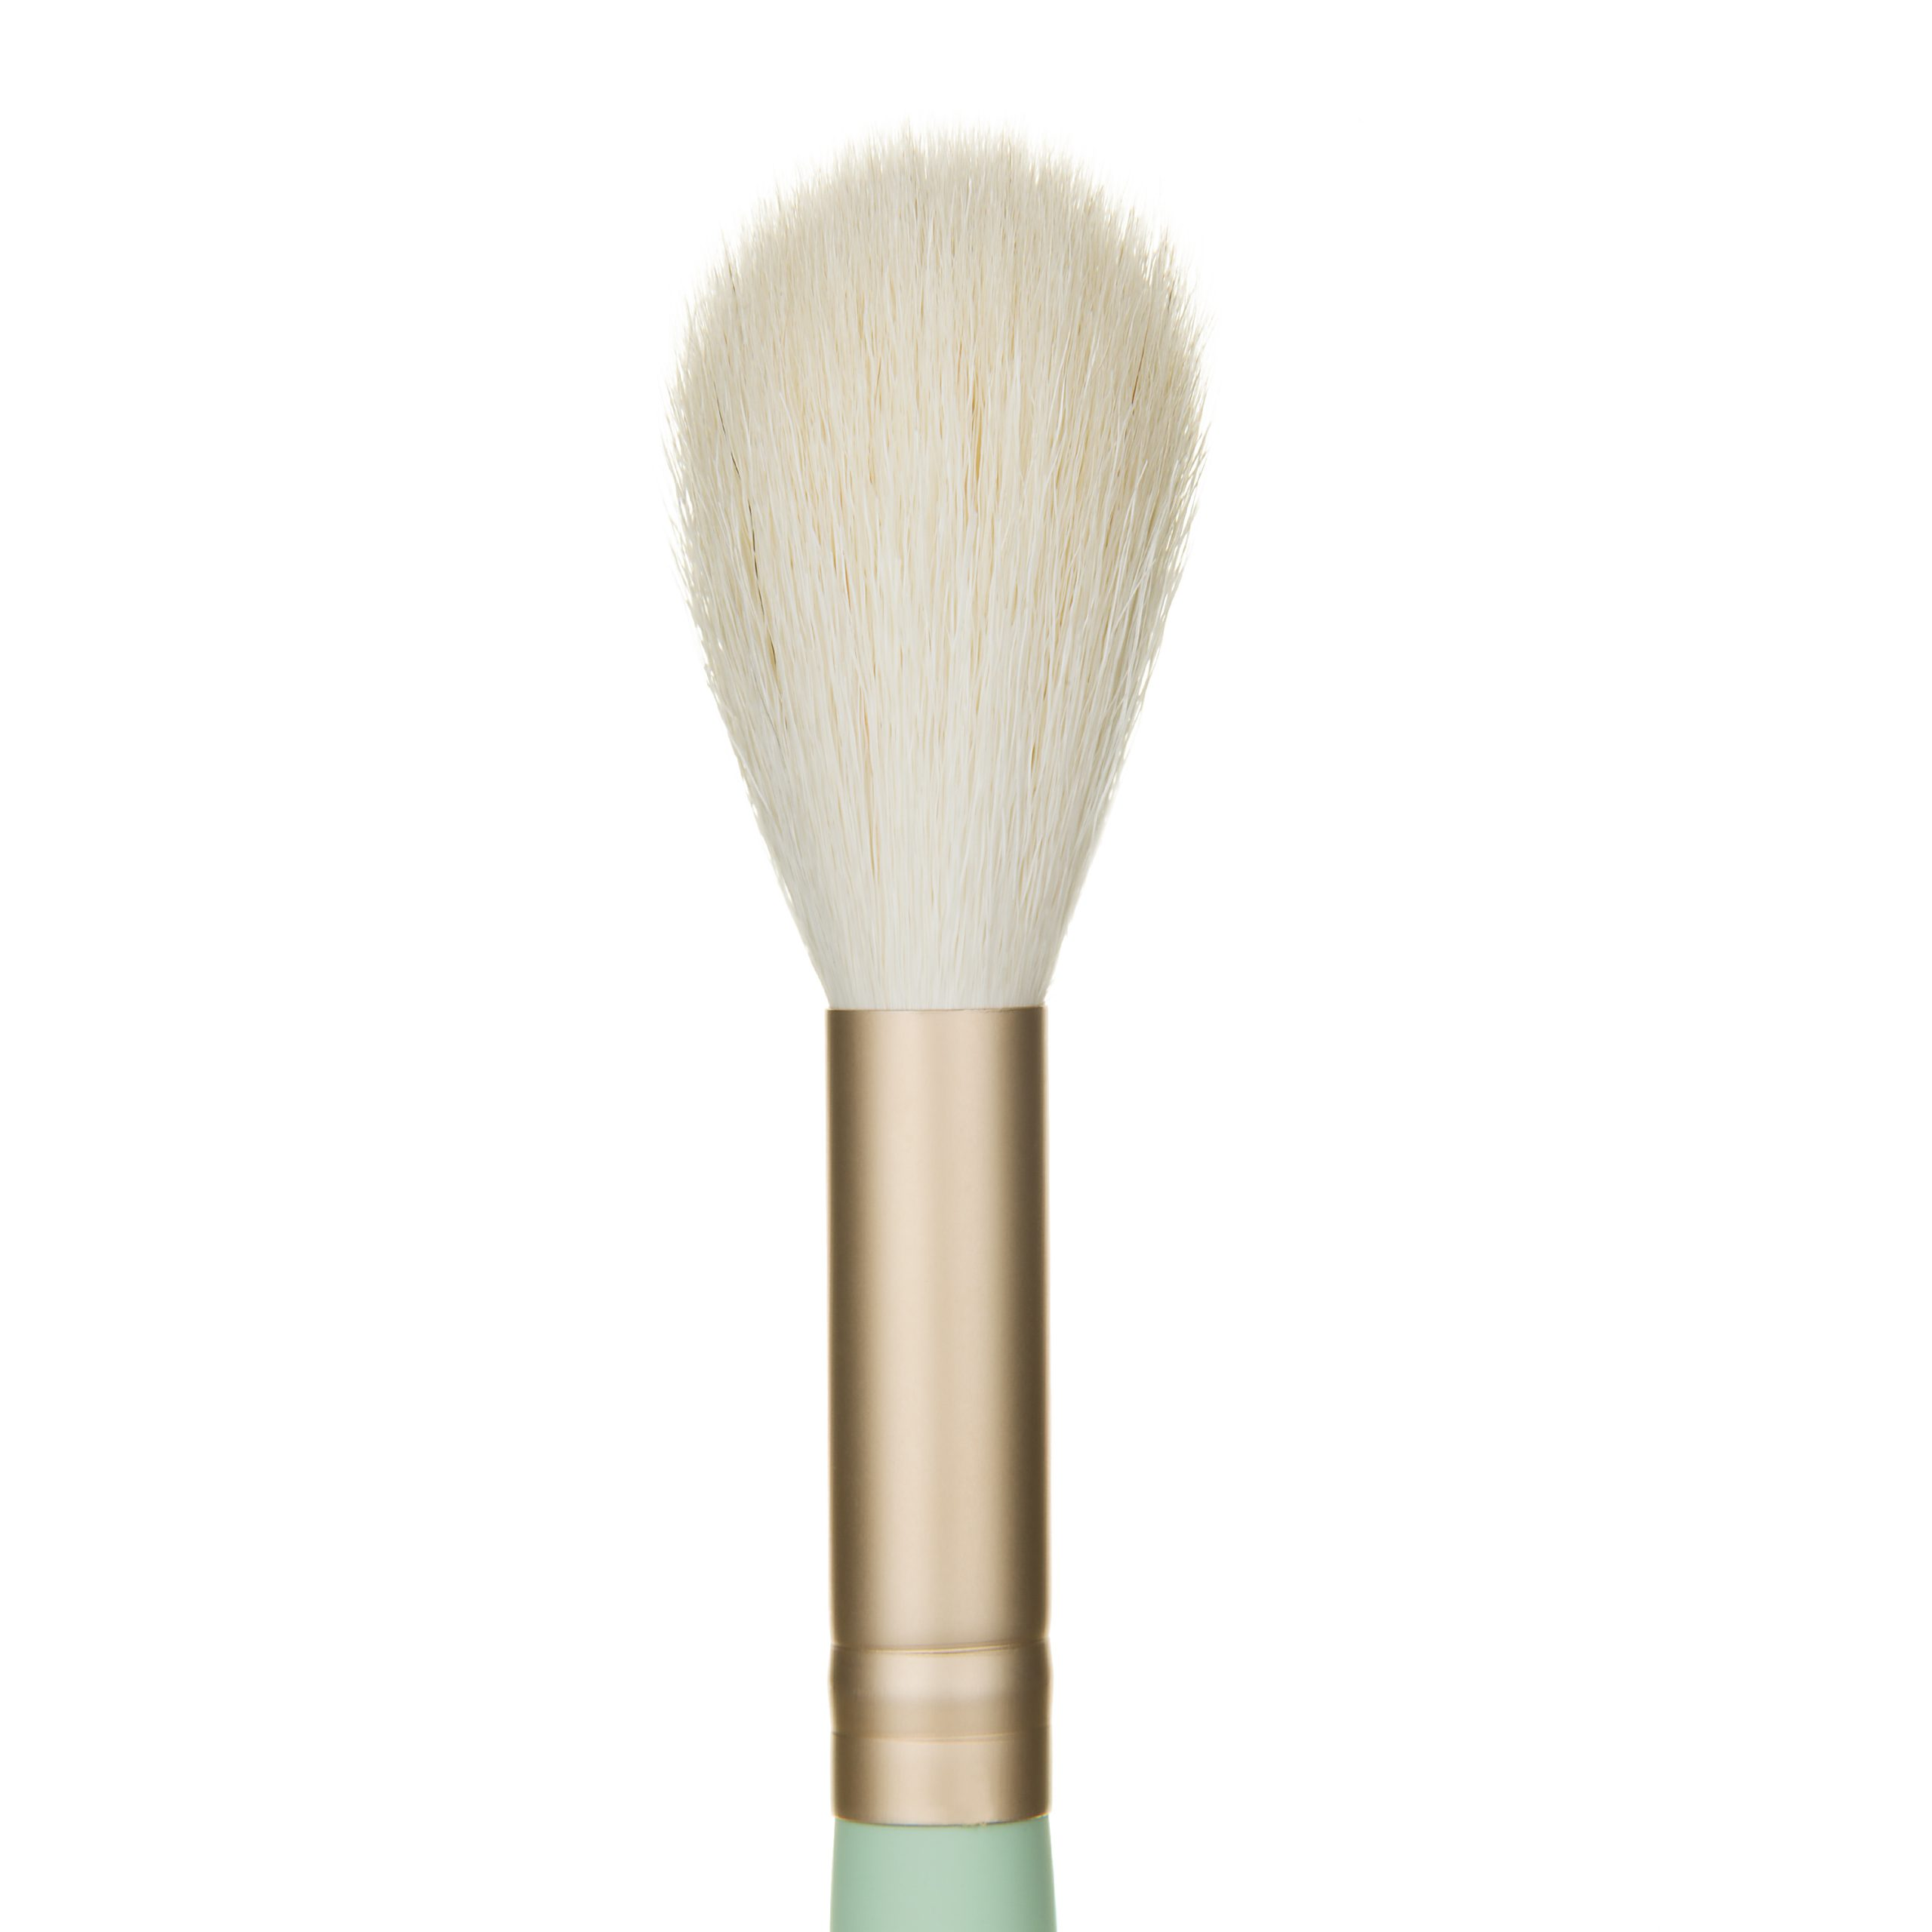 harley maekup brush for contouring